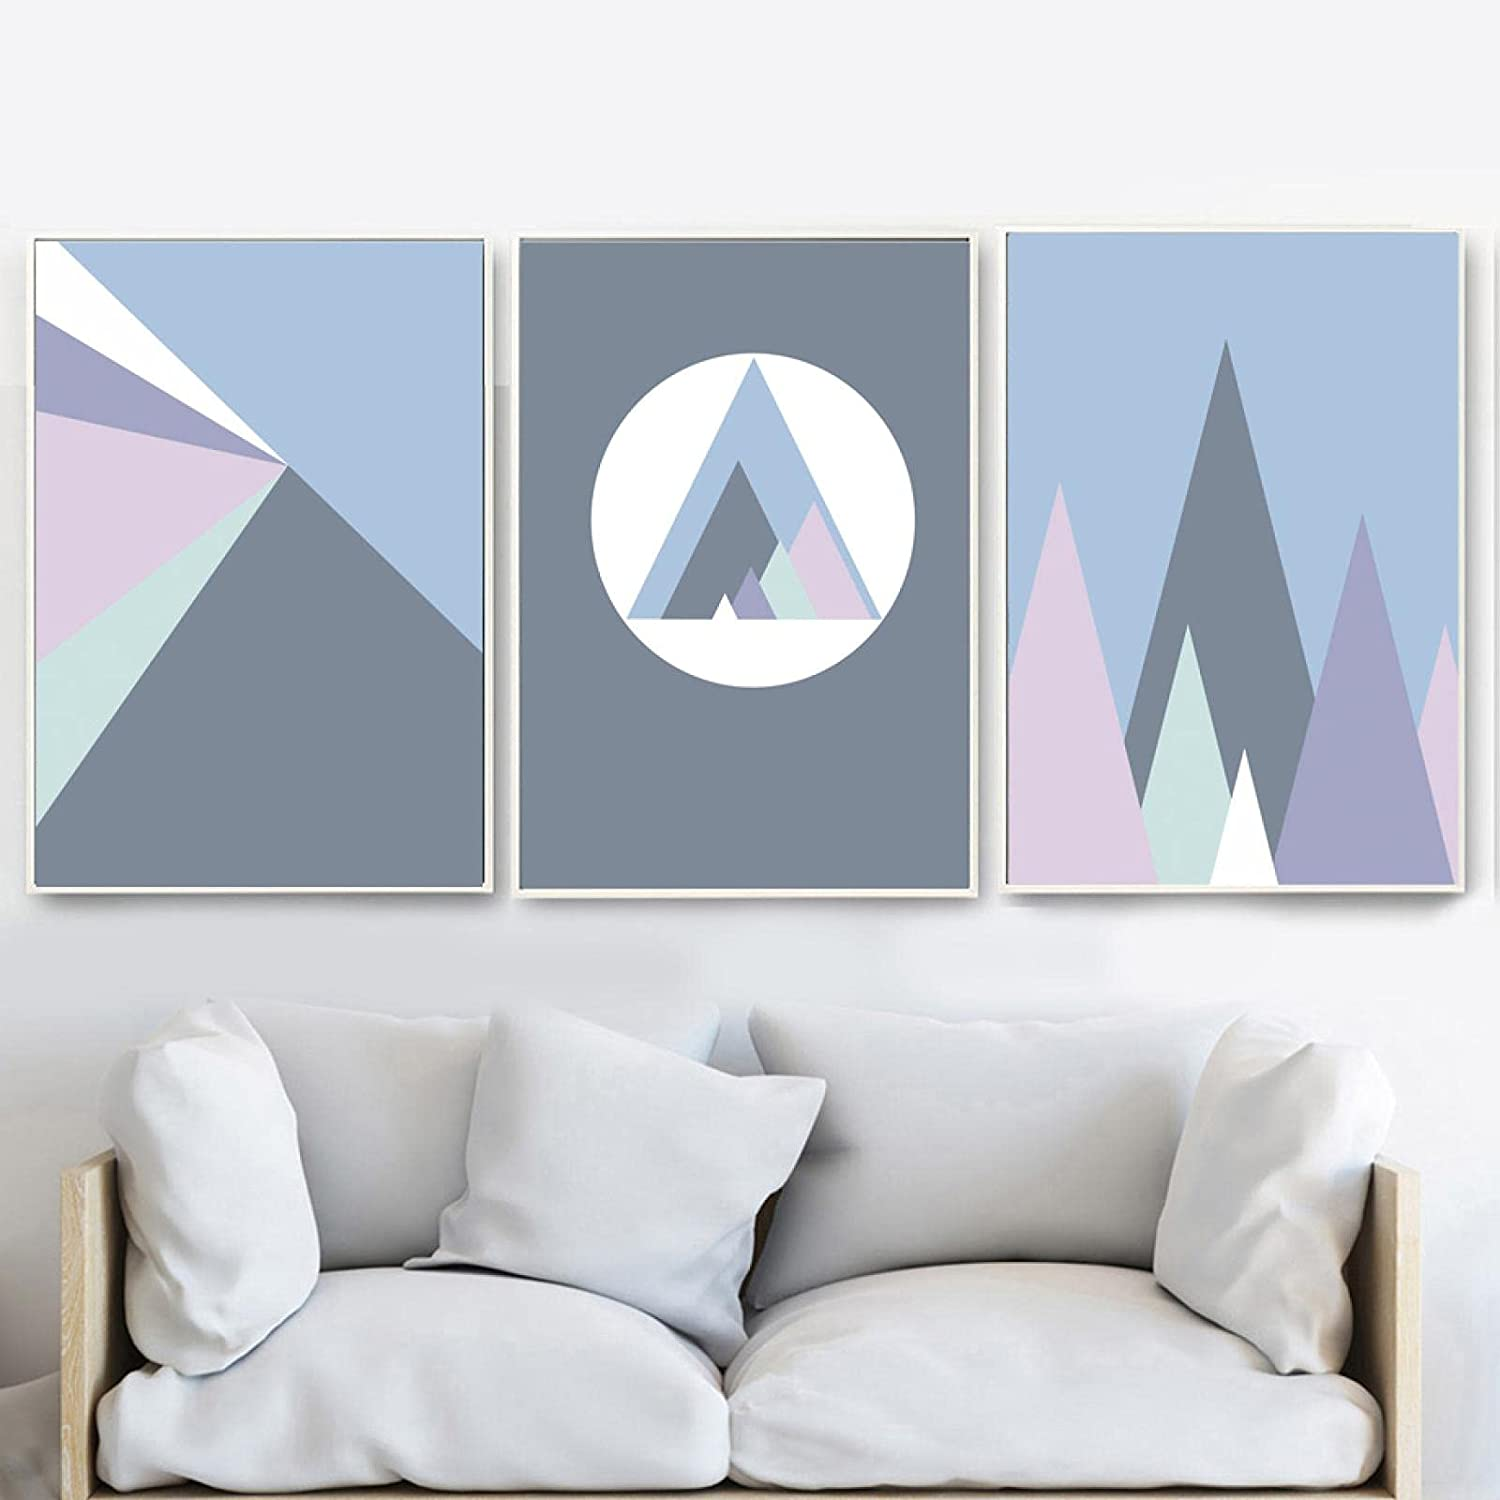 Abstract Wall Art Geometric Mountain Nordic Prints Direct store Super Special SALE held And C Posters